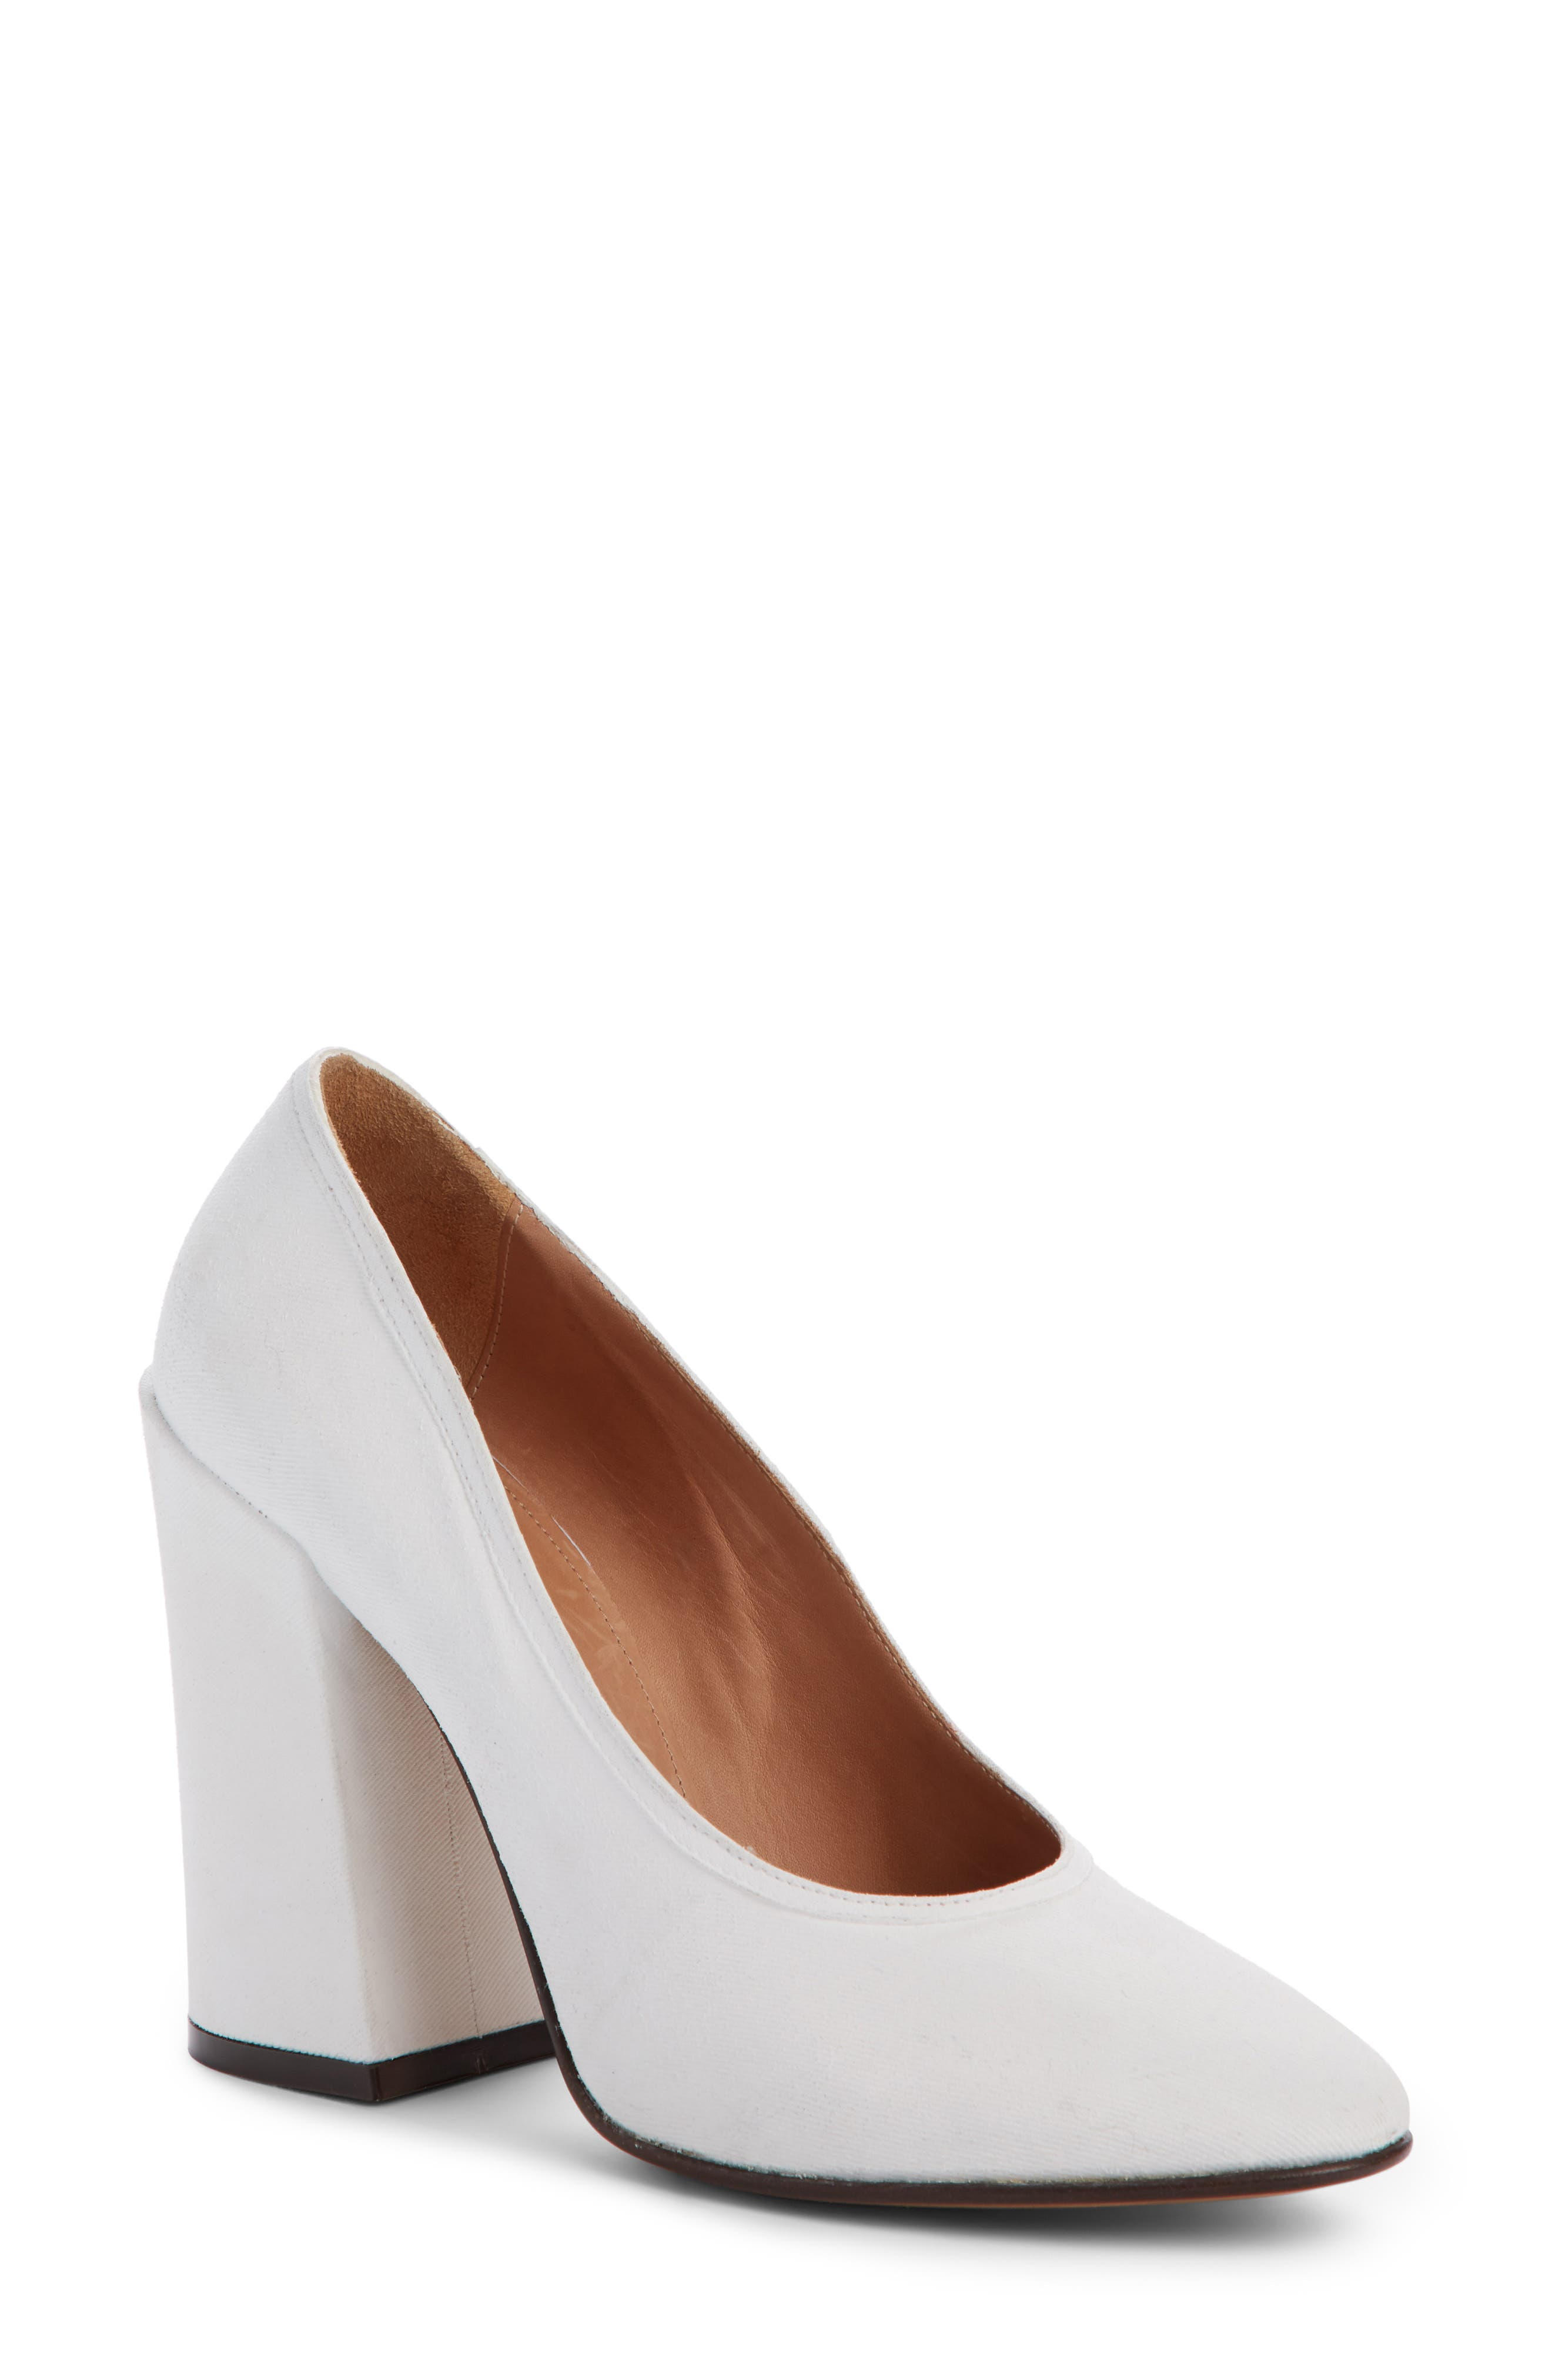 Pointed Toe Pump,                         Main,                         color, 100